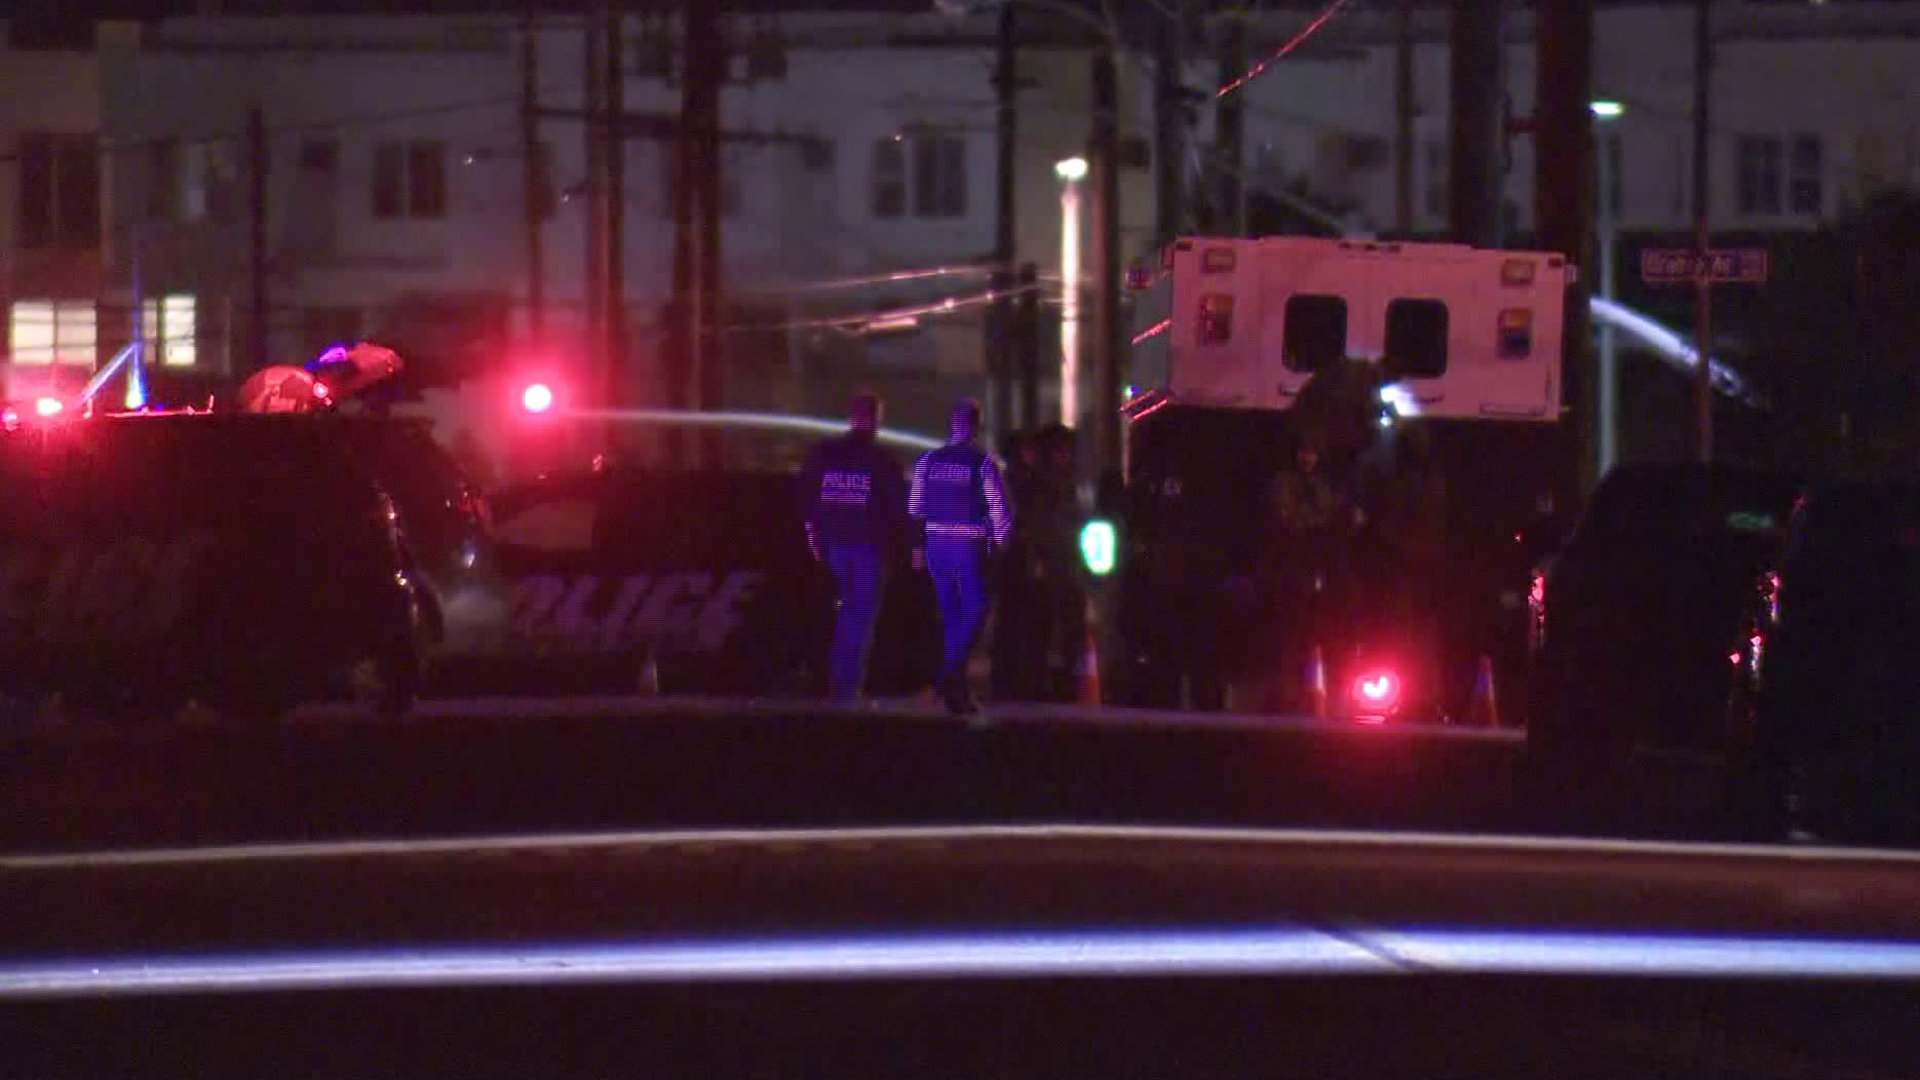 Authorities respond to an officer-involved shooting in Costa Mesa on Jan. 3, 2019. (Credit: KTLA)